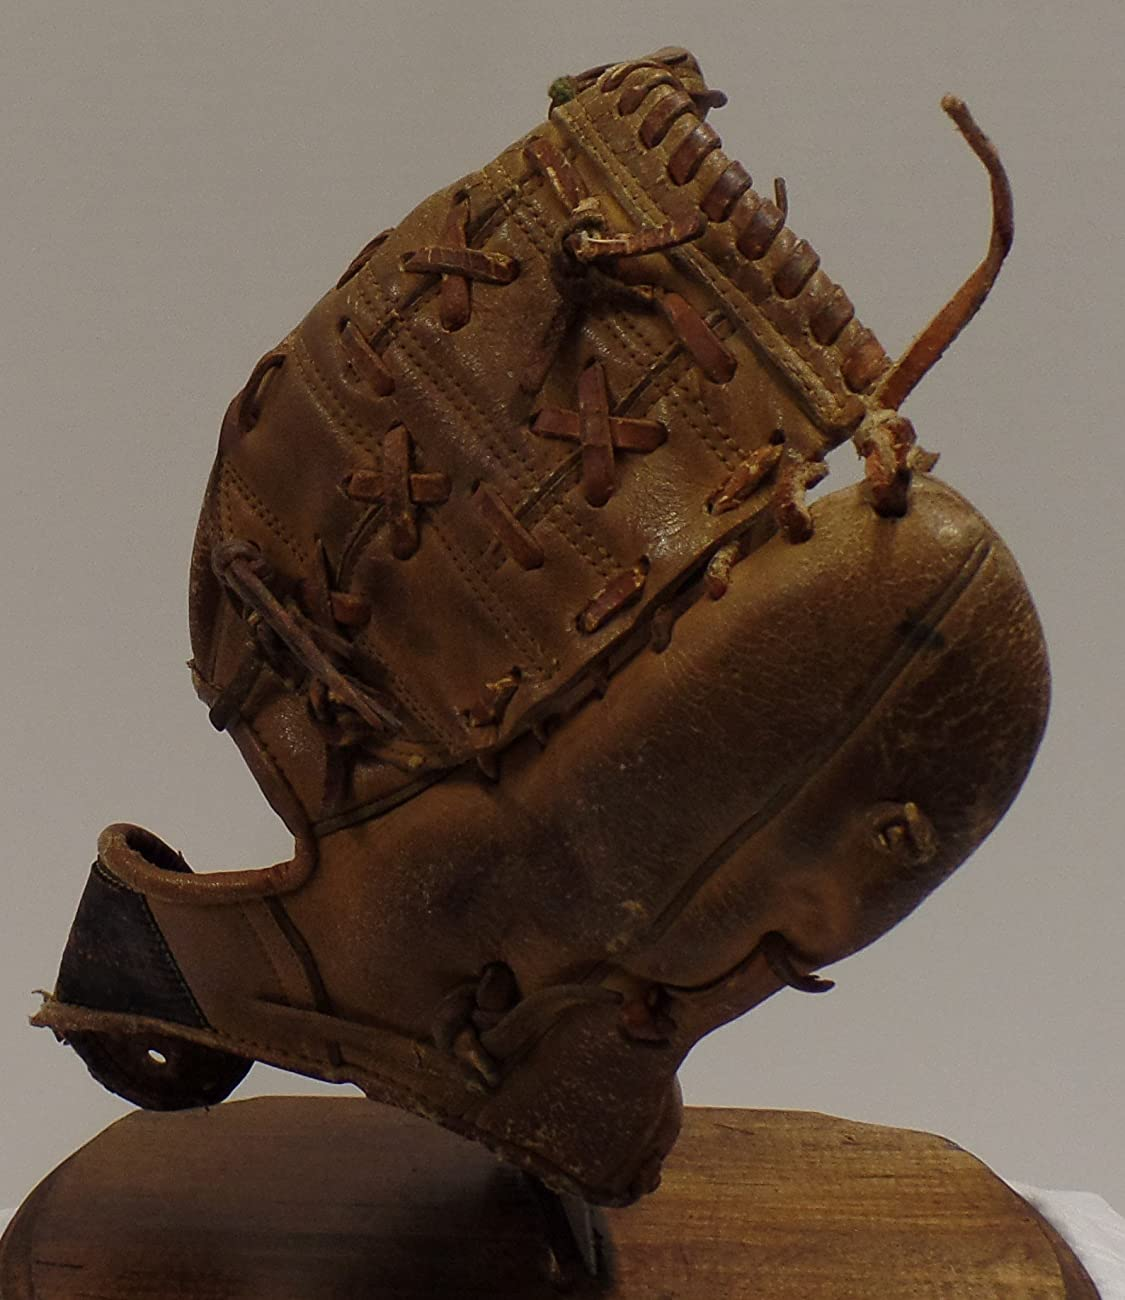 Vintage Clete Boyer Autograph Model 1035 Baseball Glove - Great for Mancave or Baseball Themed Decor (Free Shipping) 2